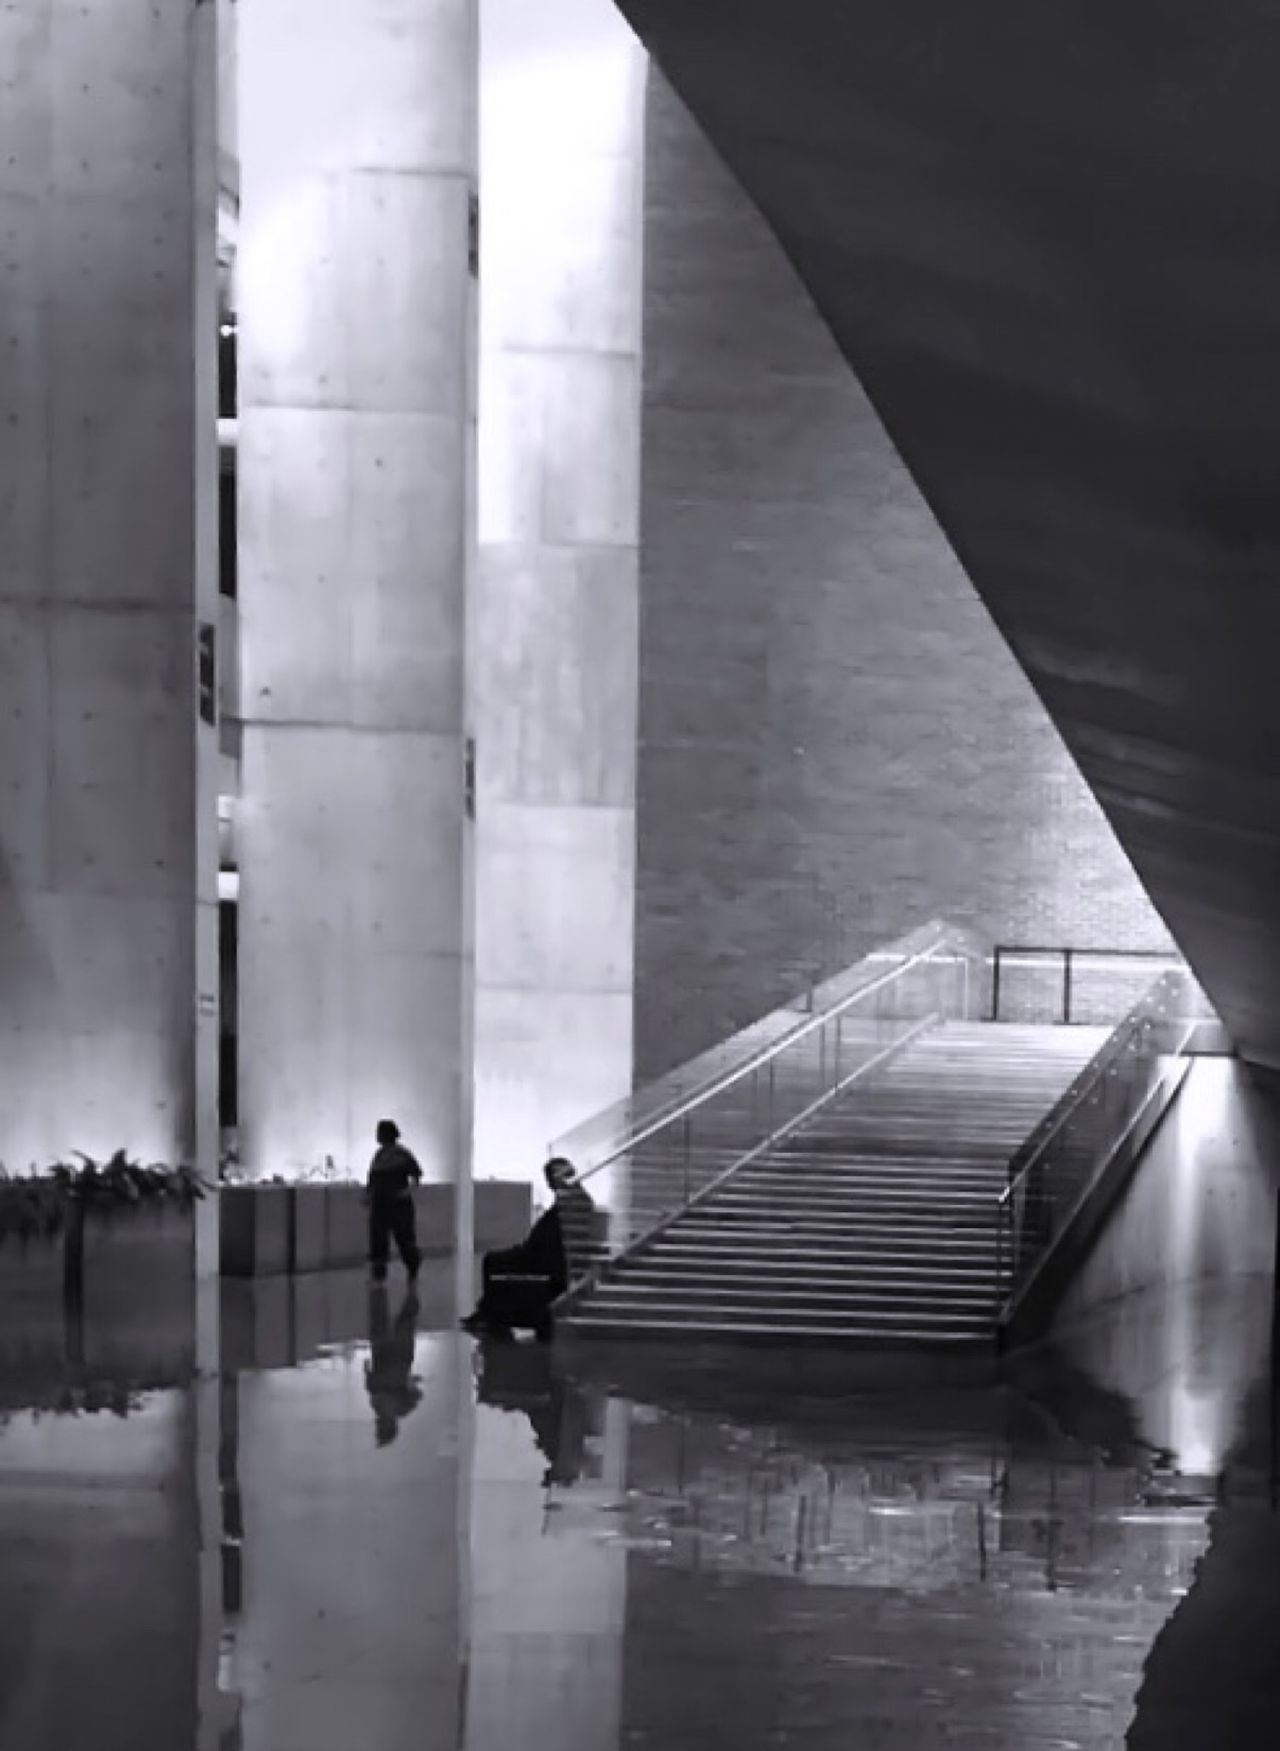 351 / 366 Architectural Column Architectural Feature Architecture Black & White Black And White Blackandwhite Building Built Structure Columns Corridor Illuminated Leading Lines Leisure Activity Modern Pabellon M PabellonM Reflection Senseofscale Silohuette Stairs Landaarquitectos Agustinlanda Agustin Landa